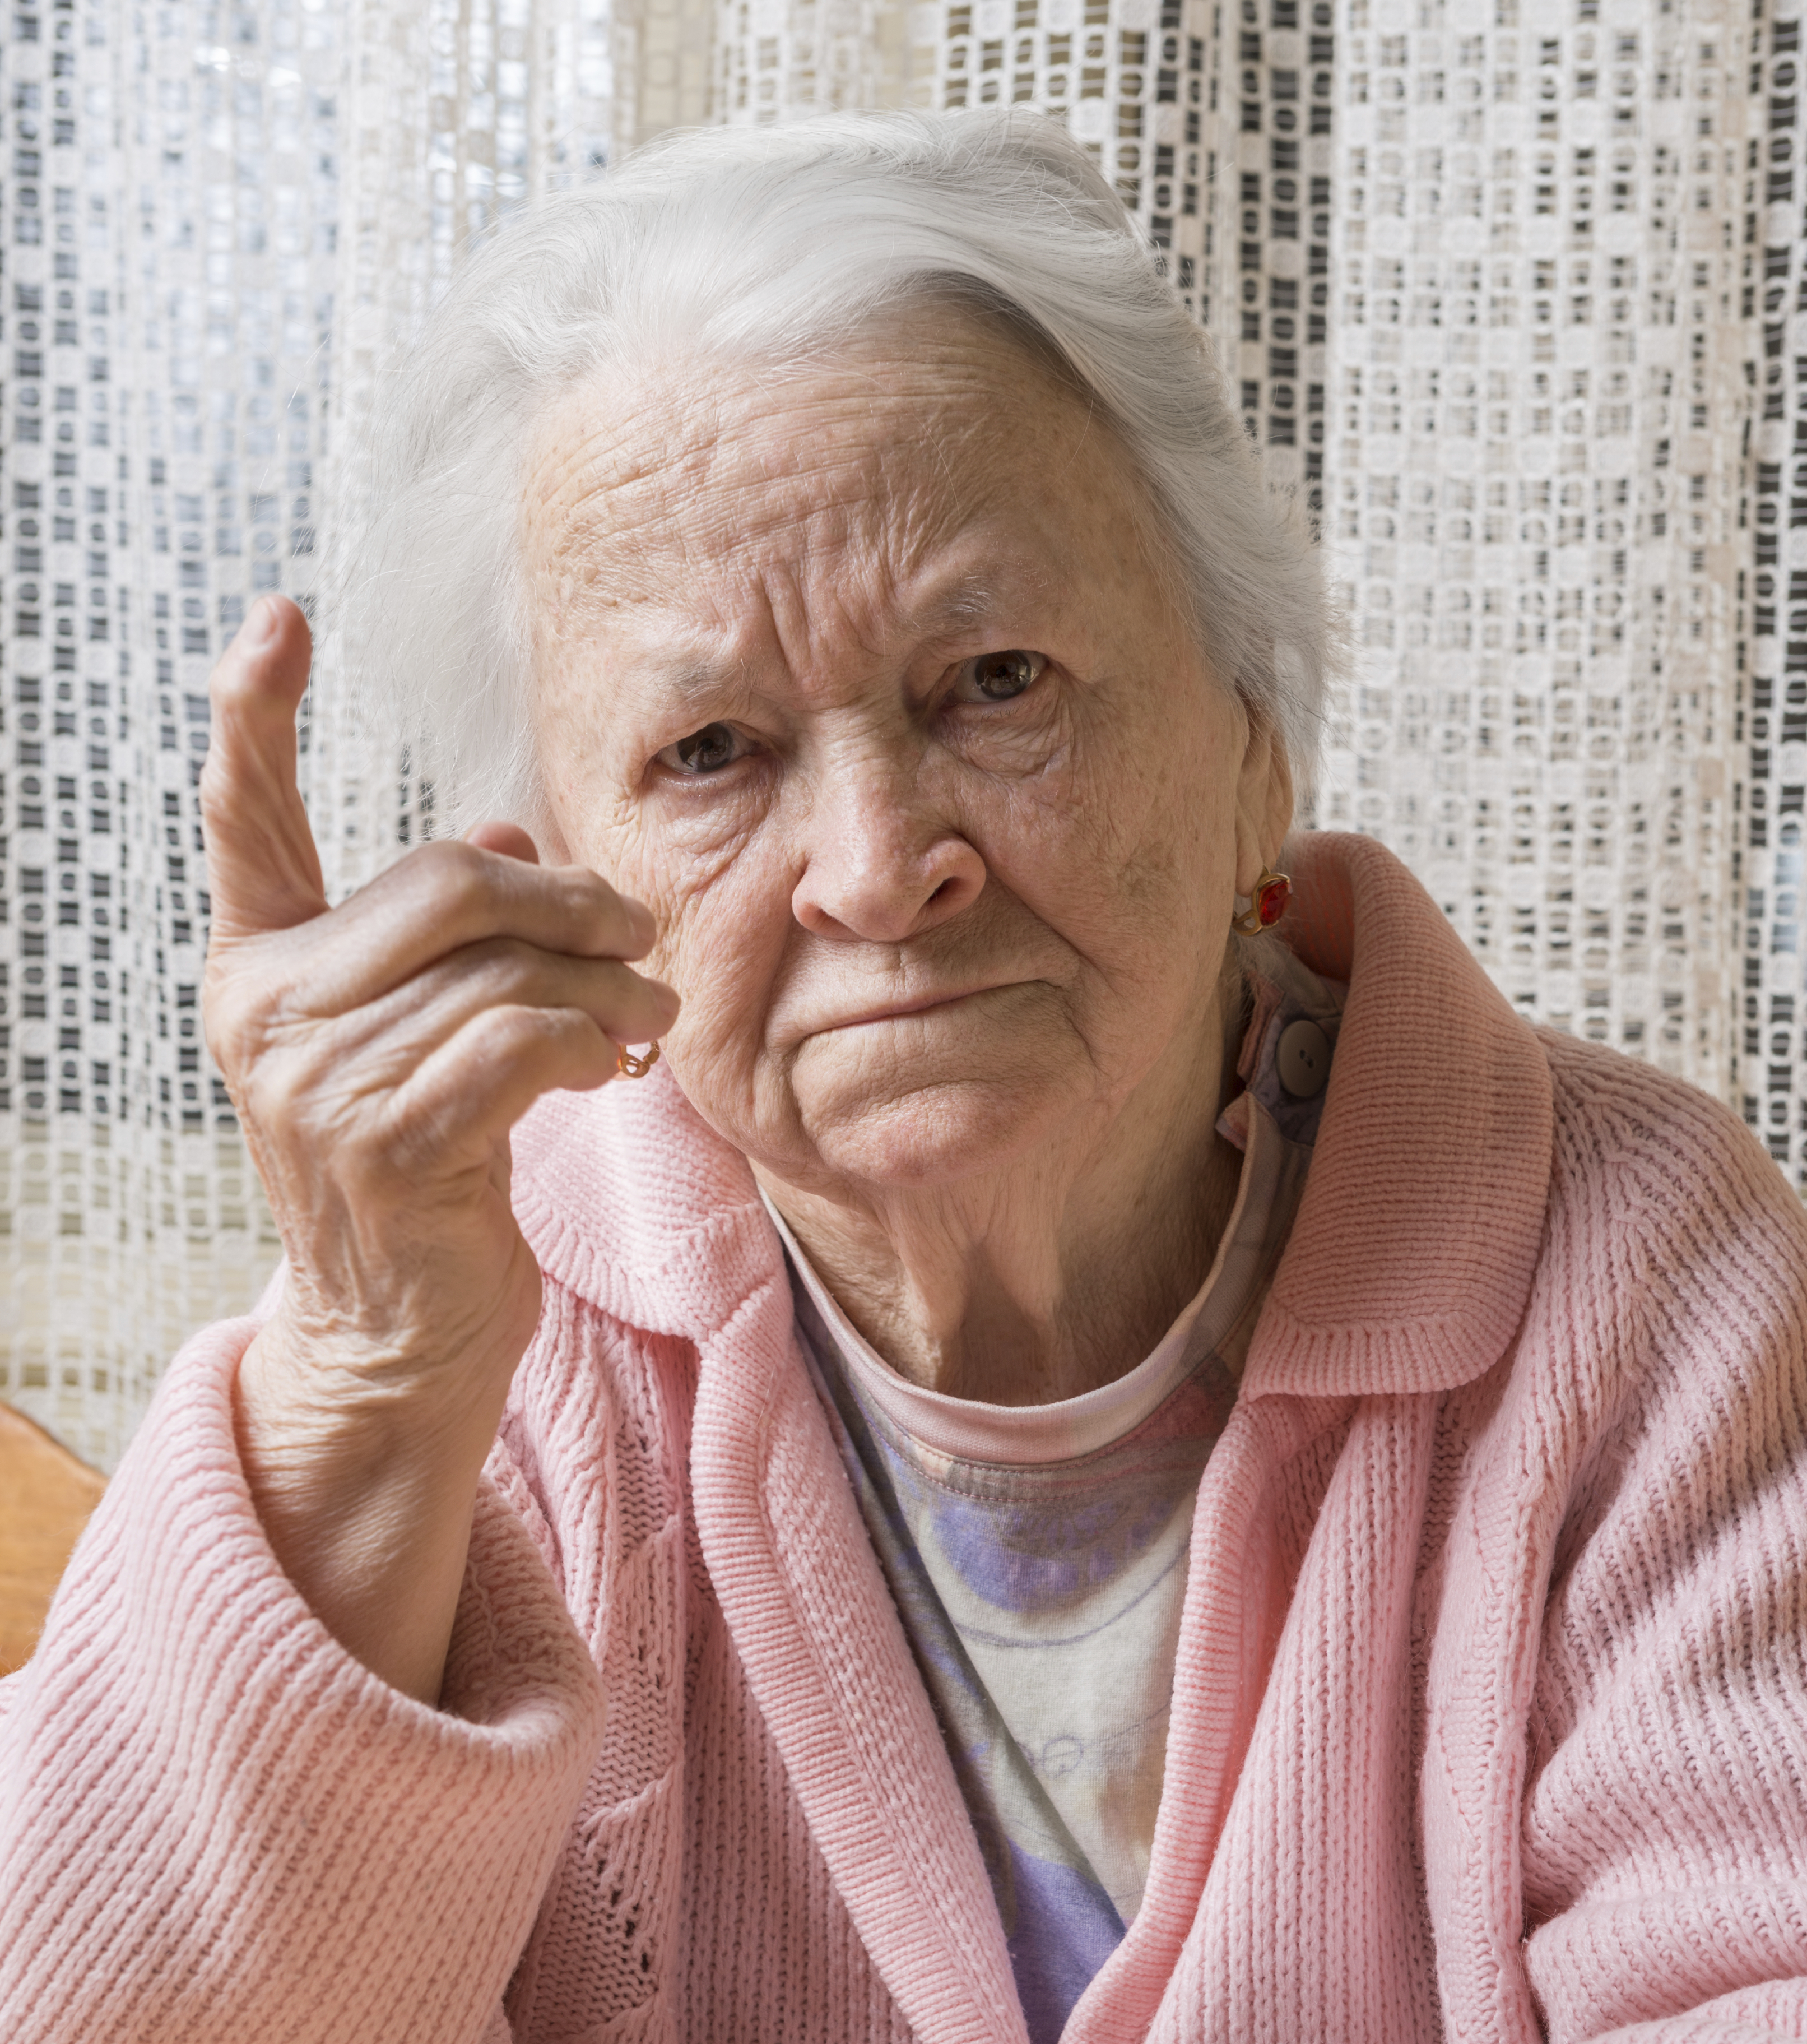 Pictures of nursing home residents